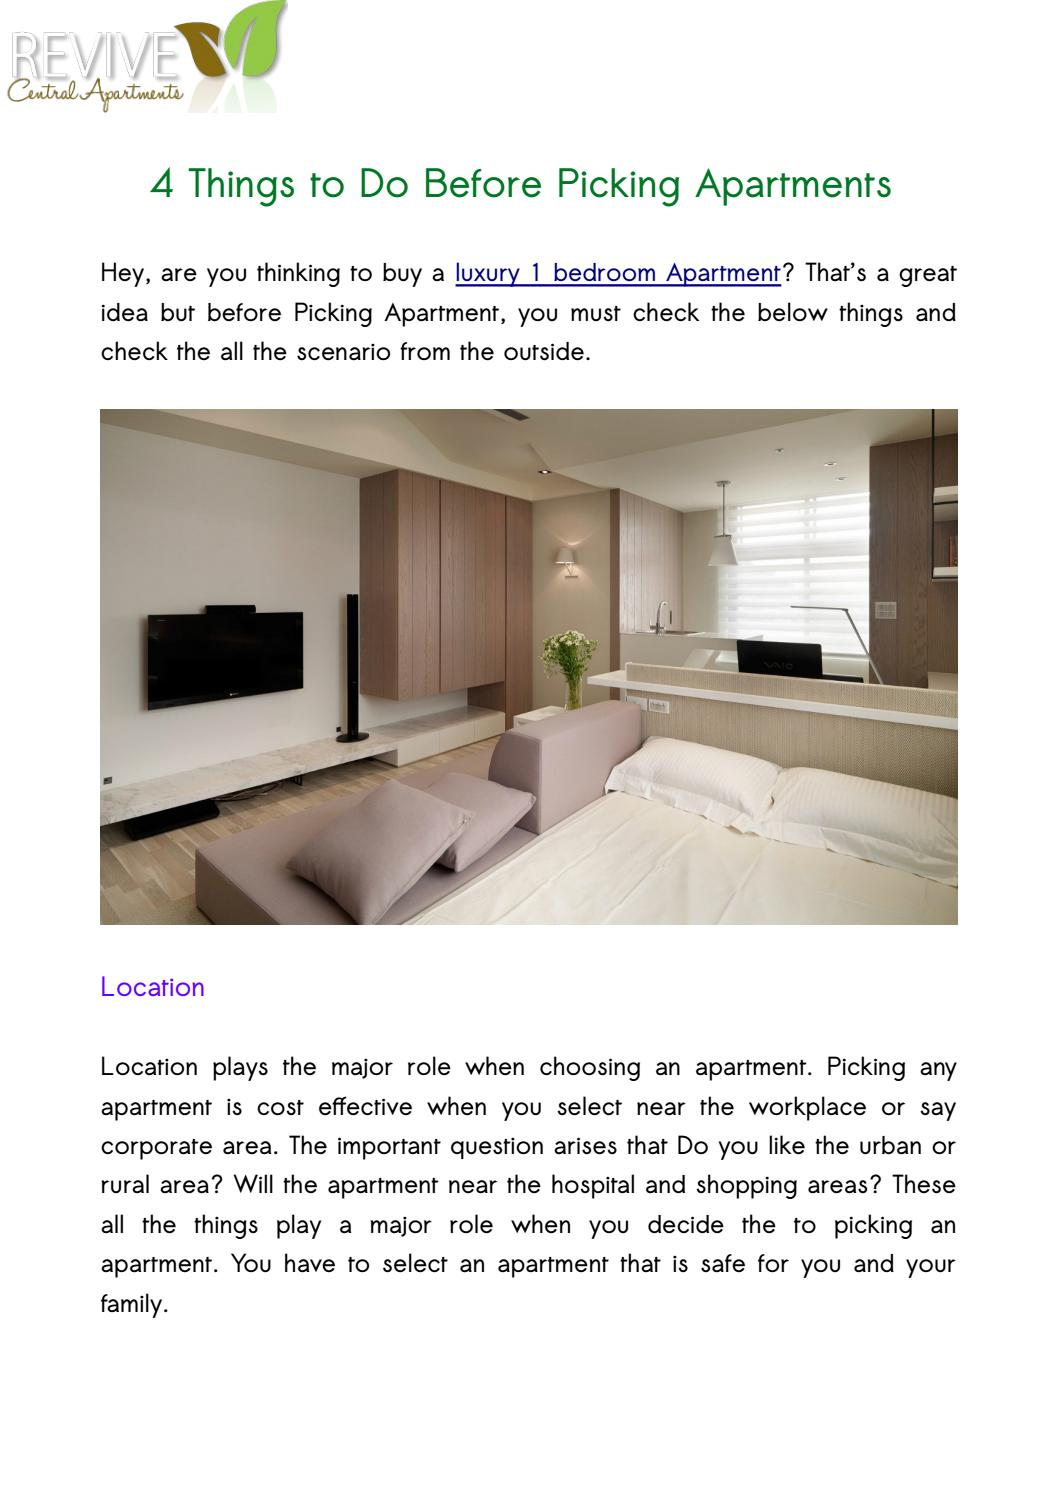 How to check the apartment before buying